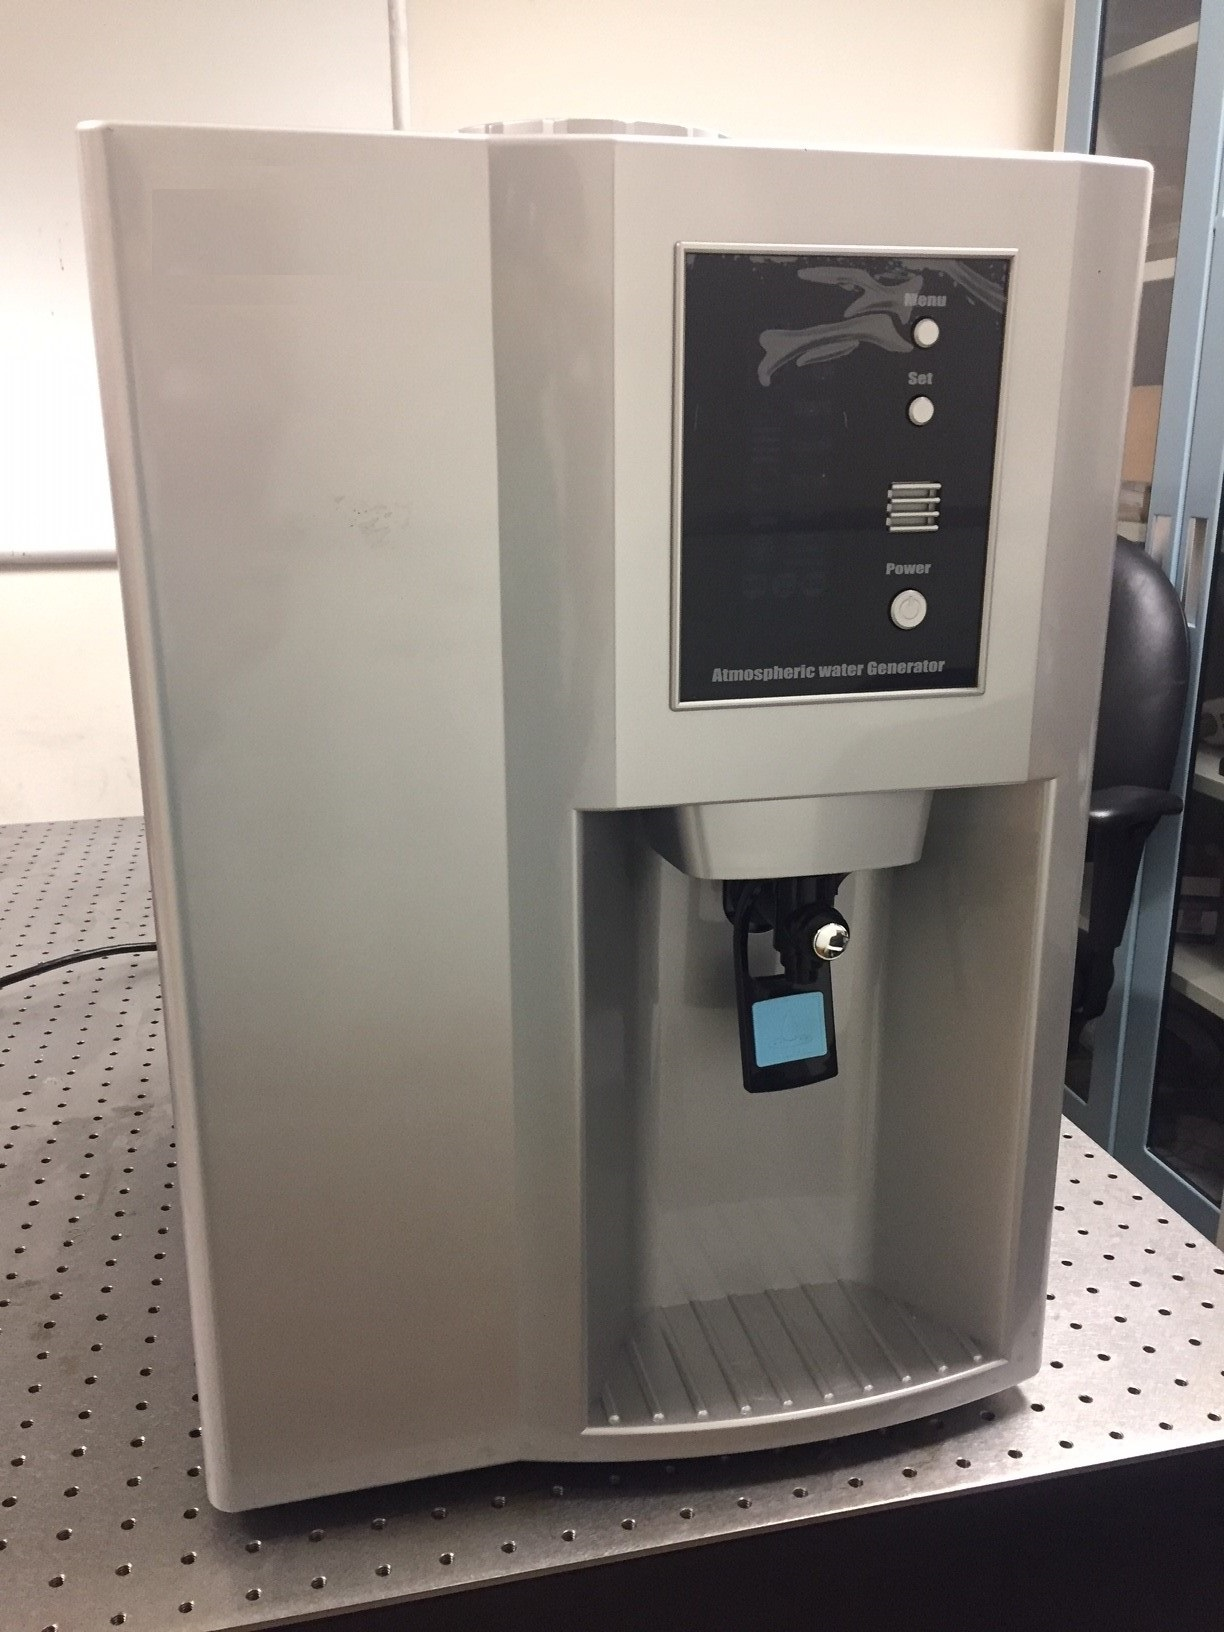 This prototype atmospheric water generator, or AWG, uses a special refrigerator to condense water vapor from the air. The device filters the water and deposits it into a collector for use.